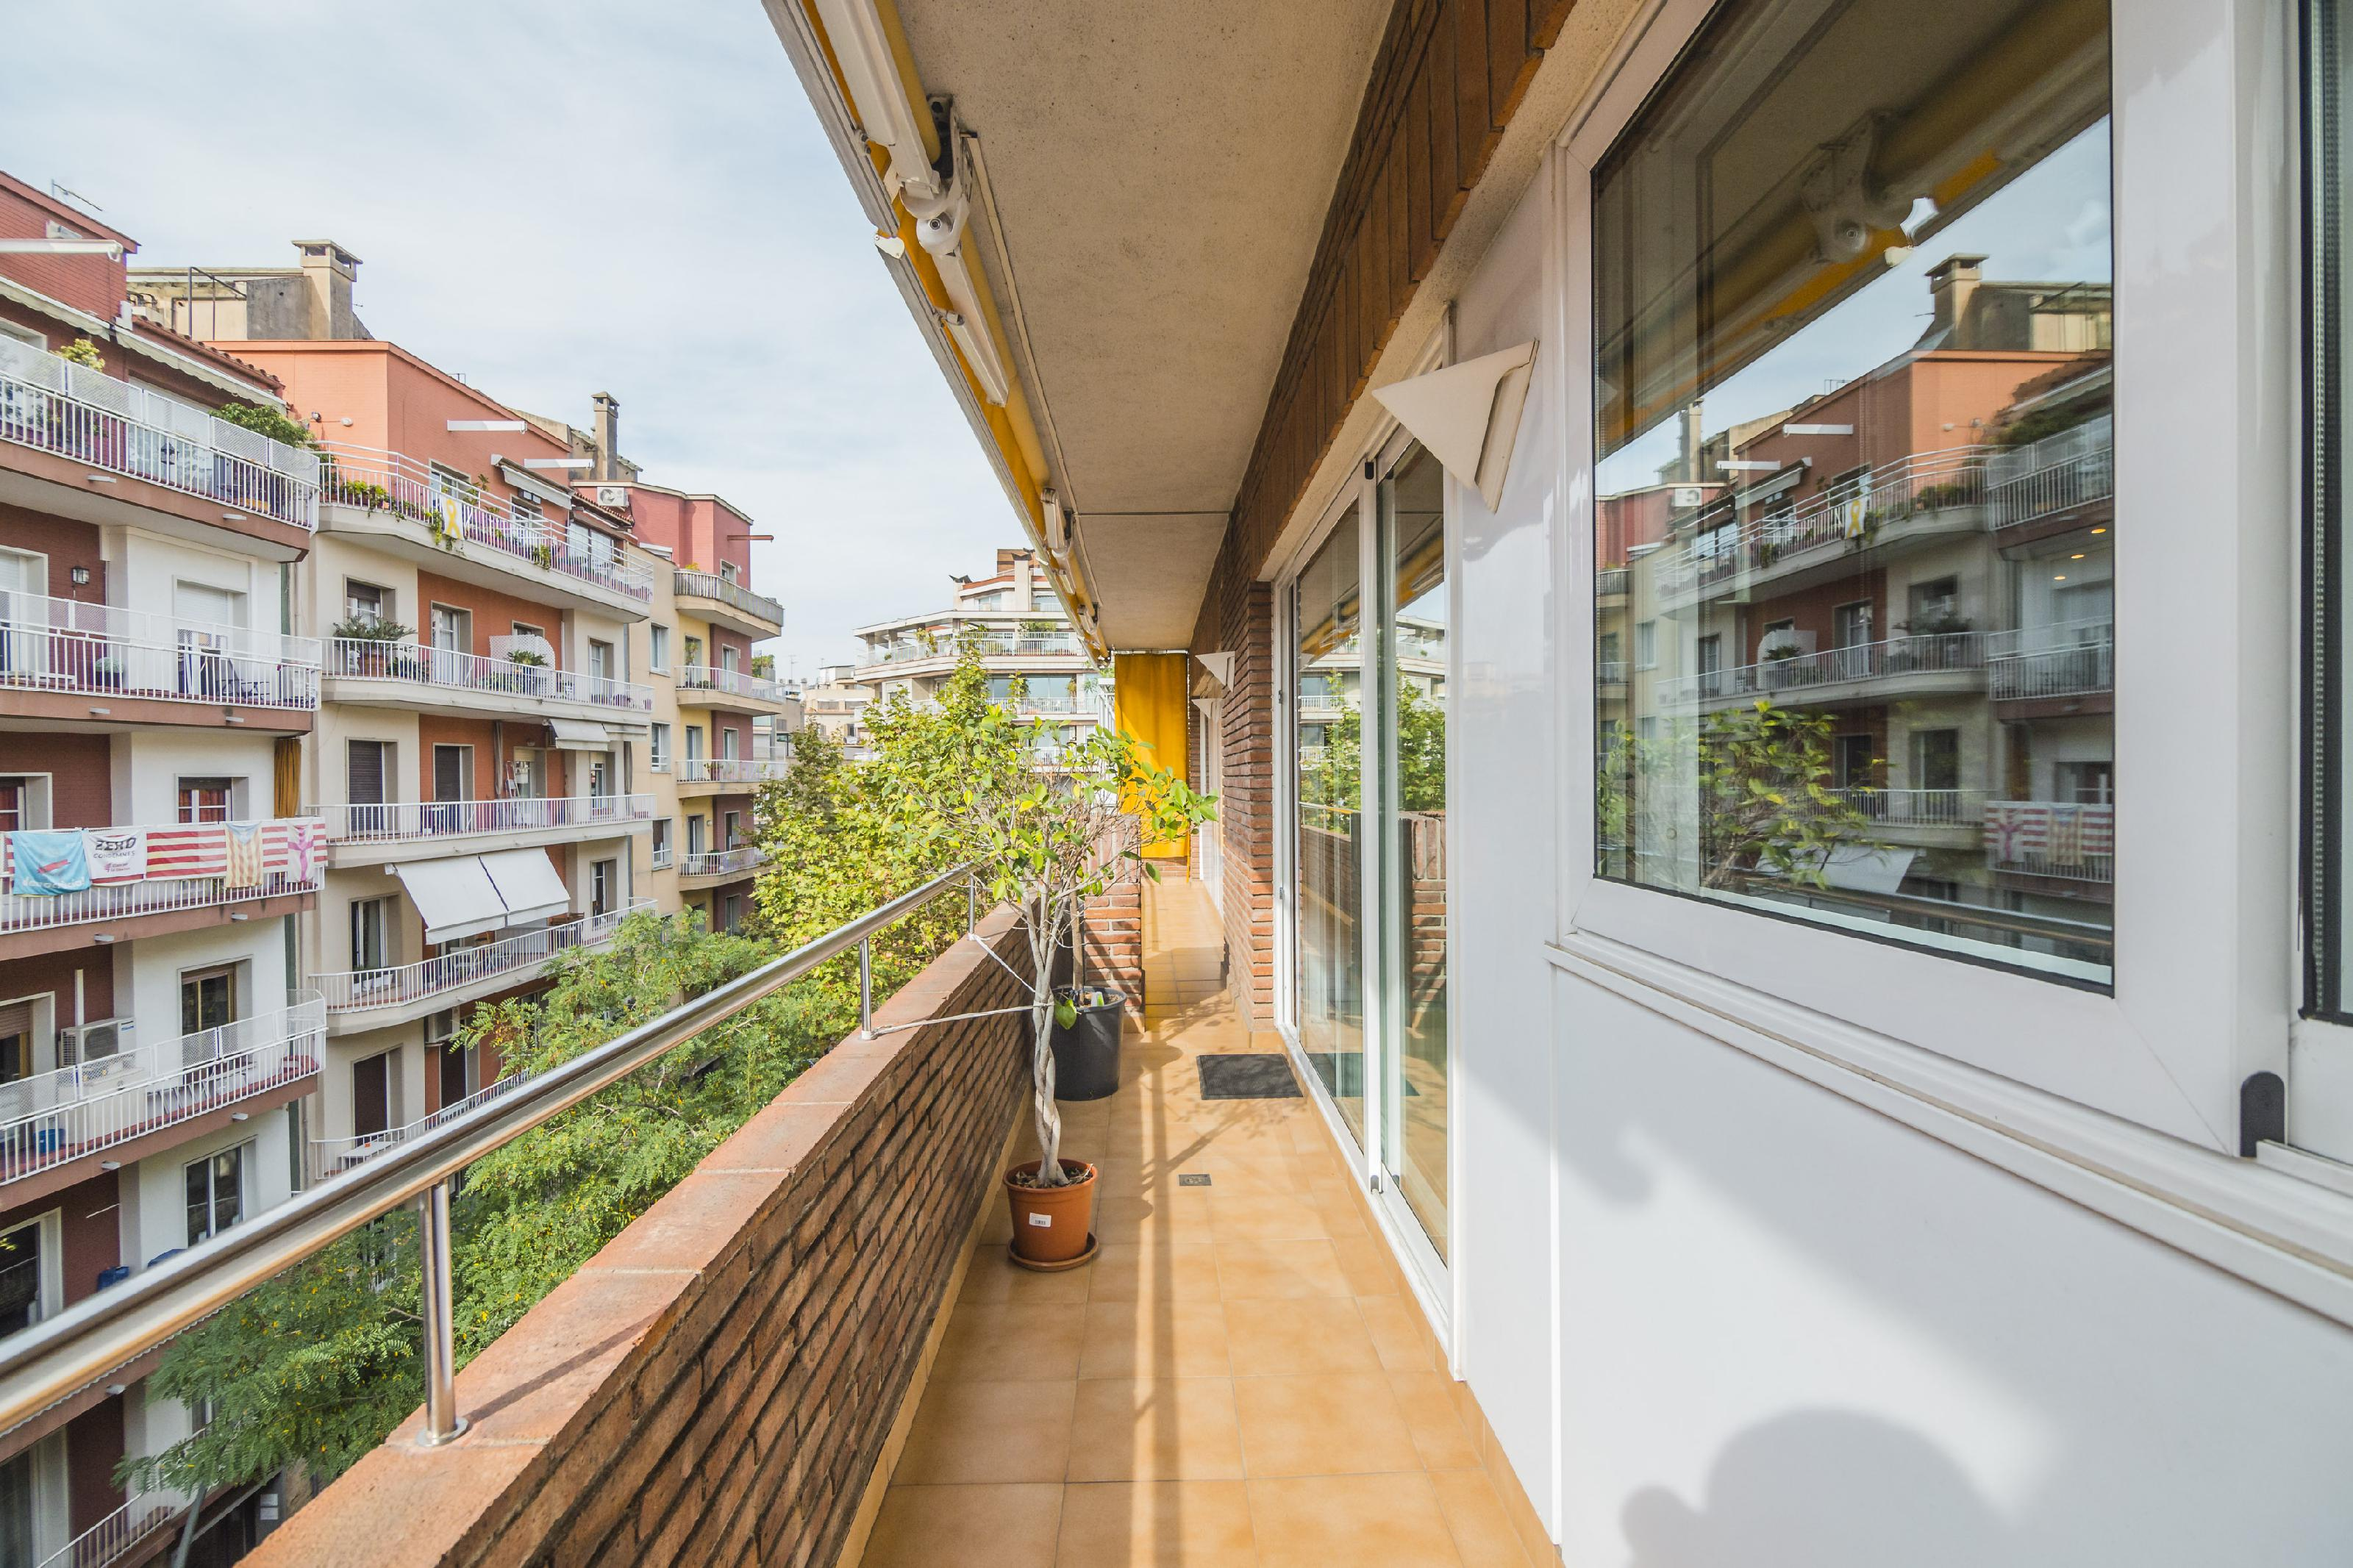 232637 Penthouse for sale in Sarrià-Sant Gervasi, Sant Gervasi-Galvany 2